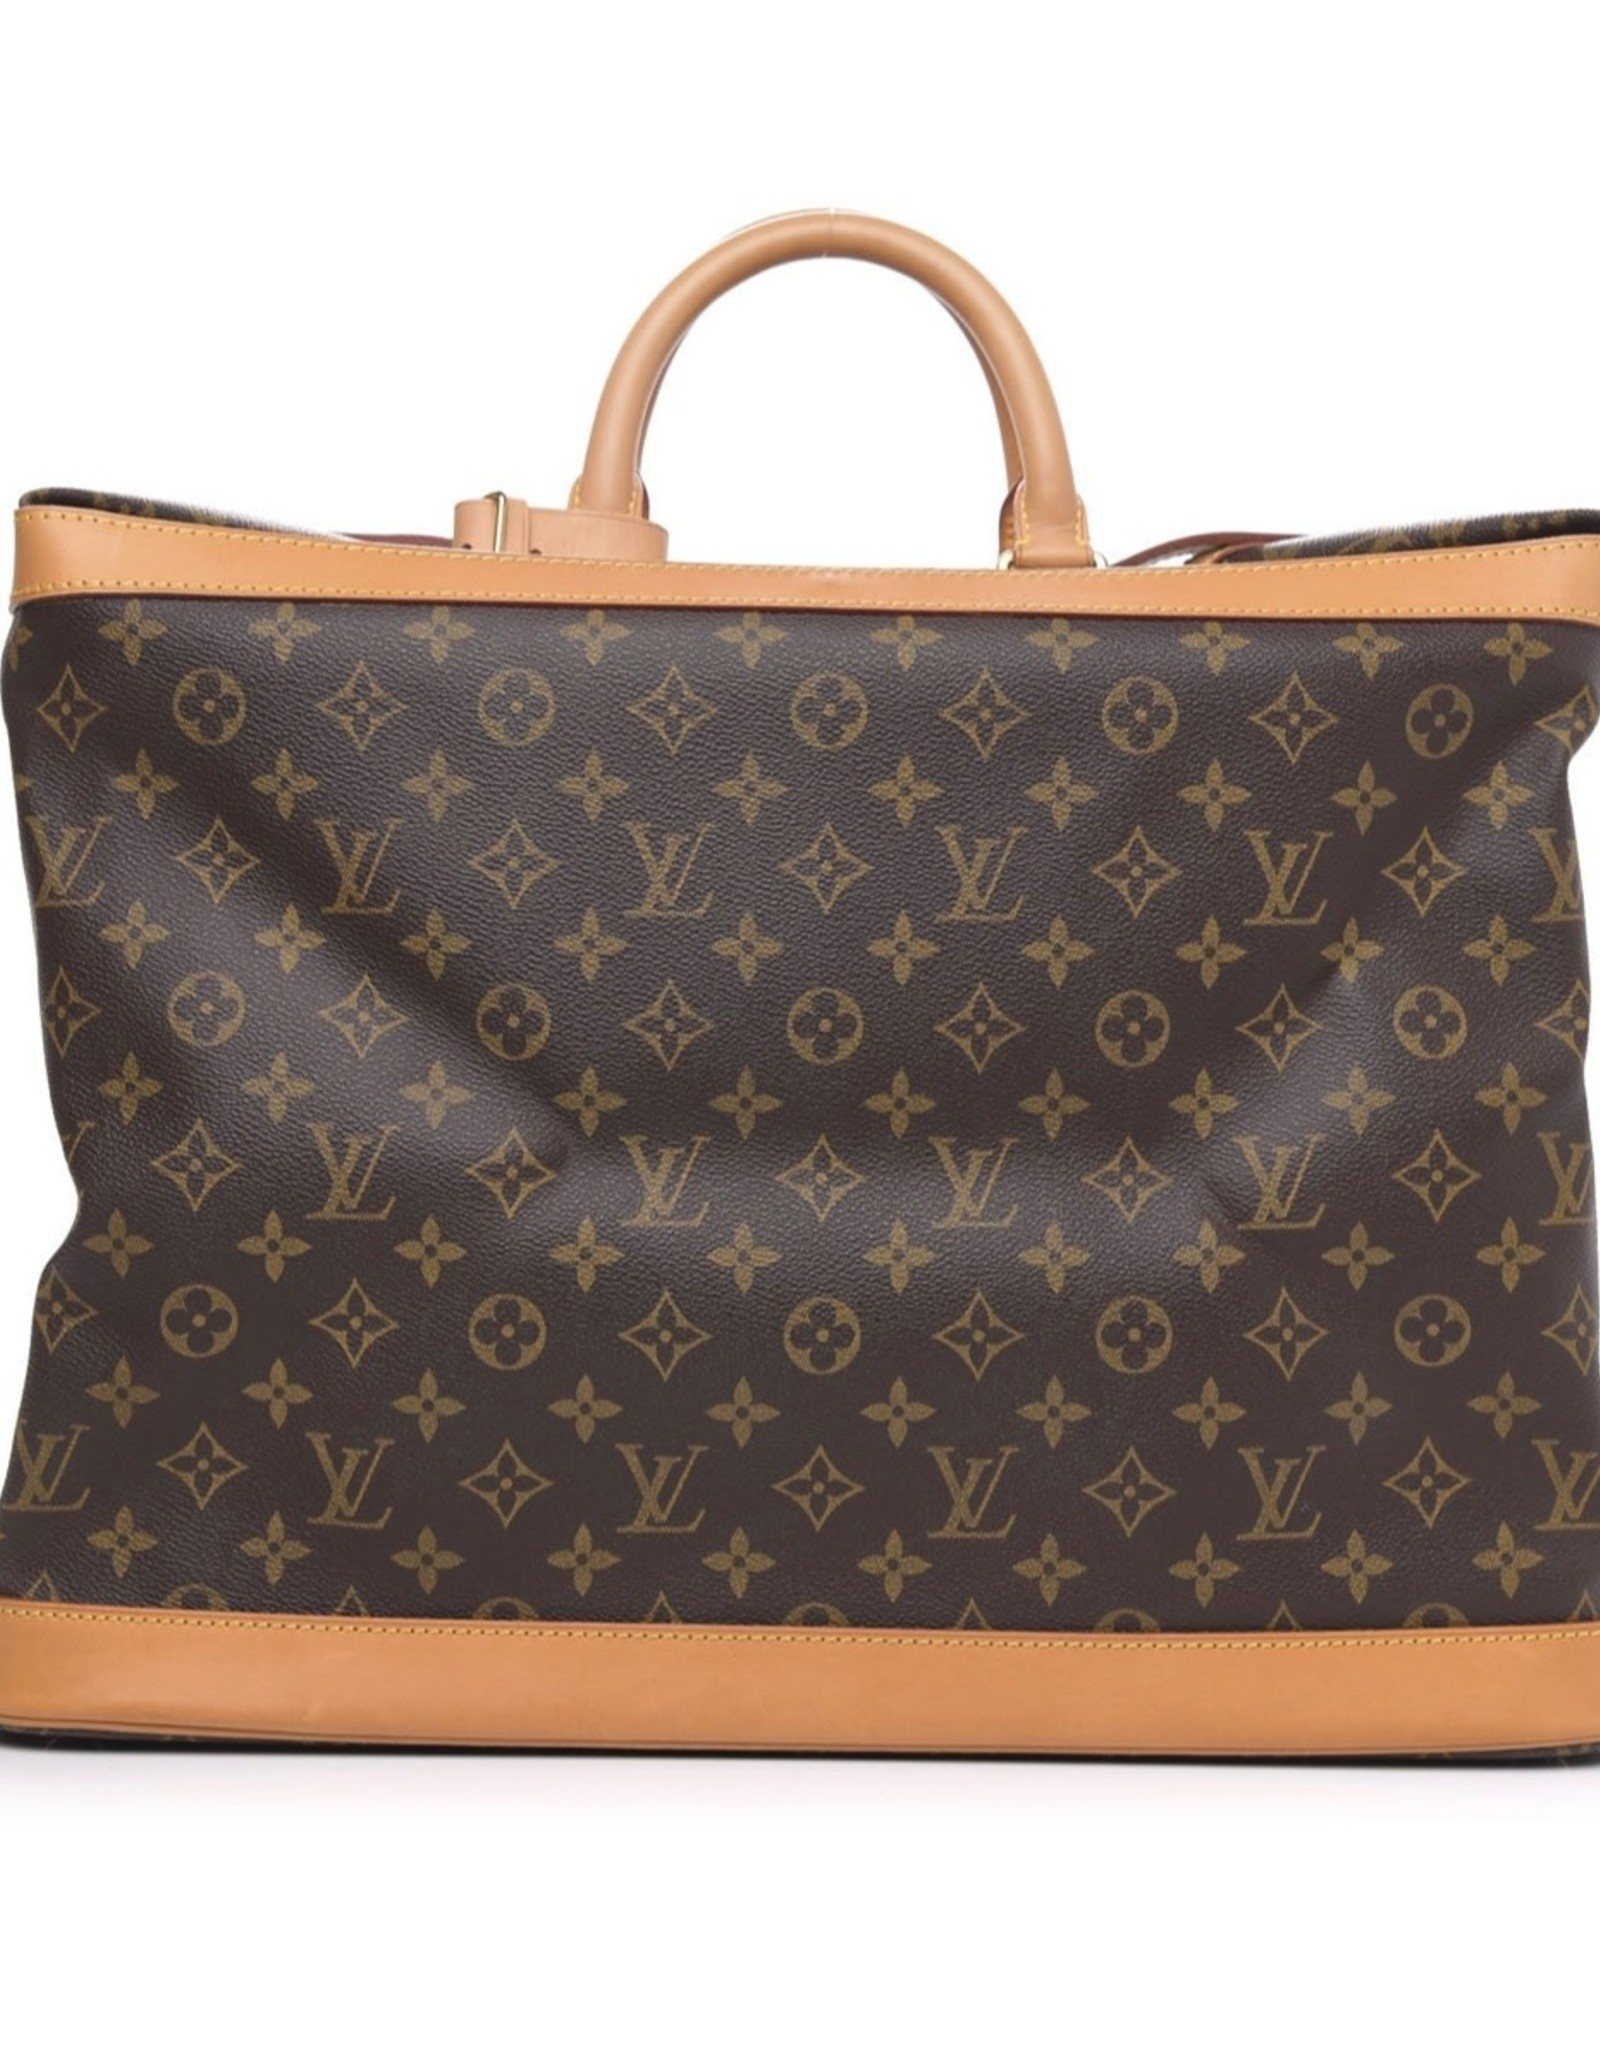 Wyld Blue Vintage Louis Vuitton Luggage Bag